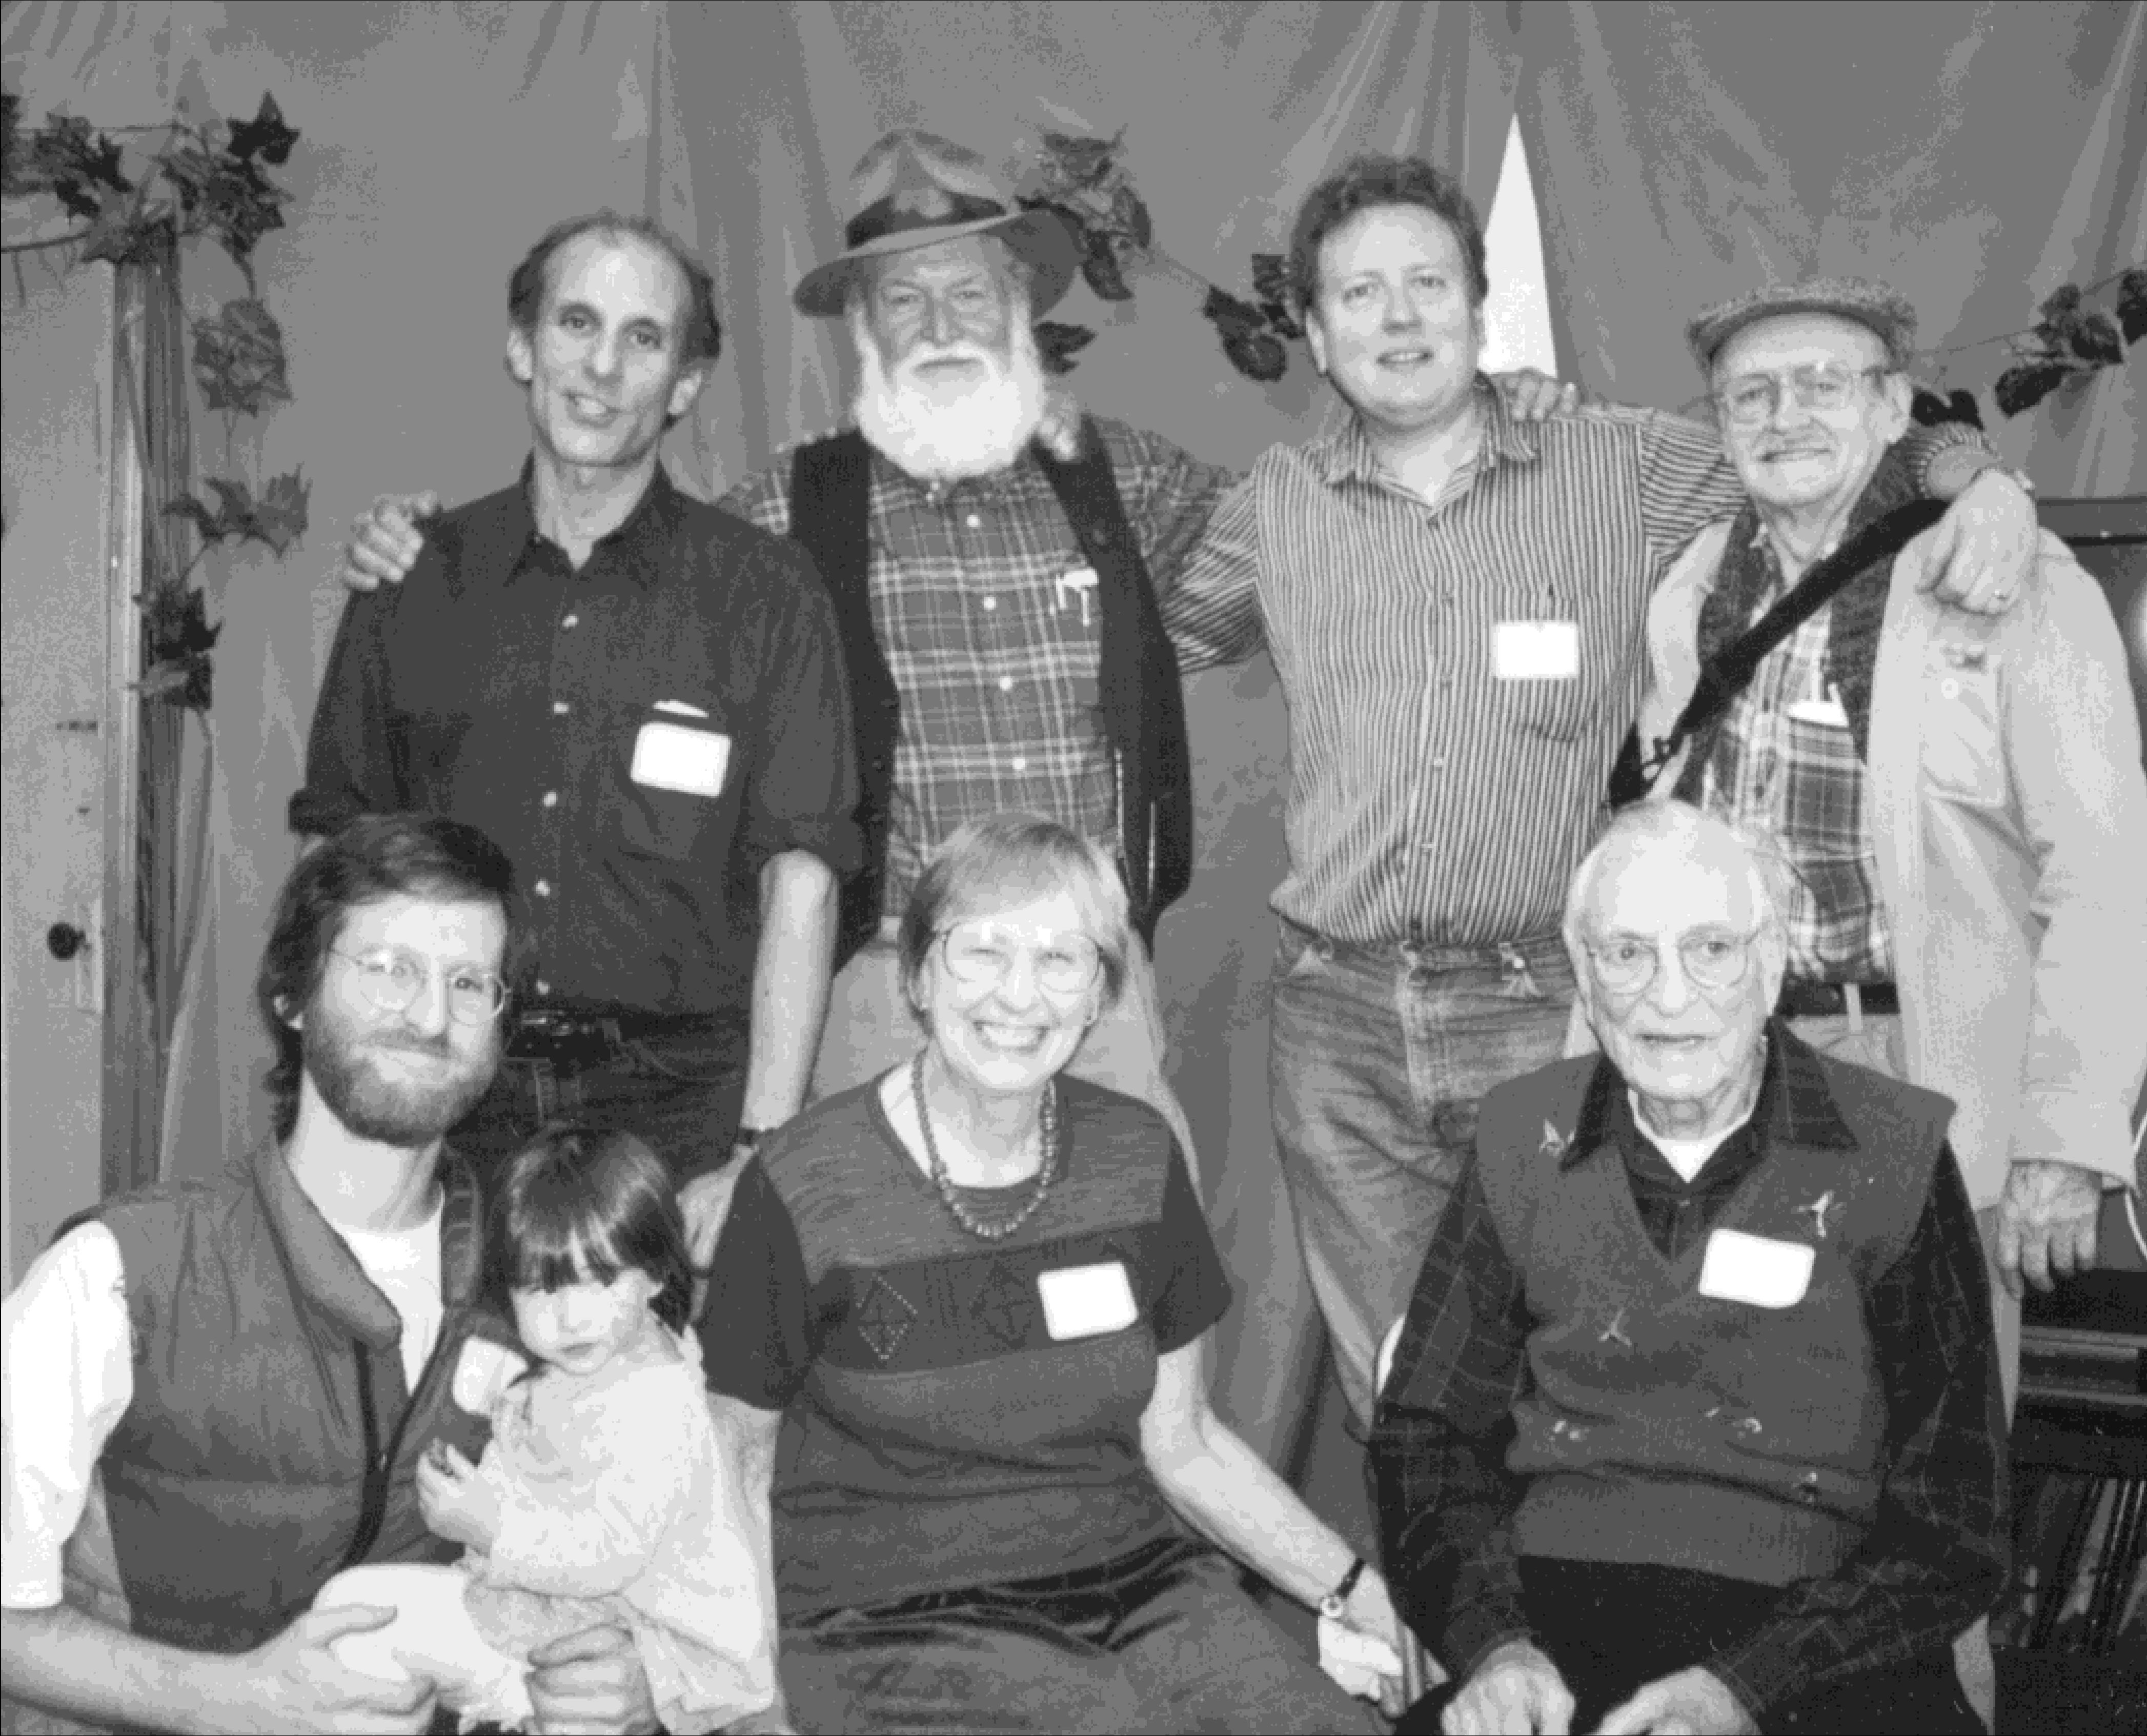 Chicago Friends of the Lincoln Brigade and Ed Balchowsky